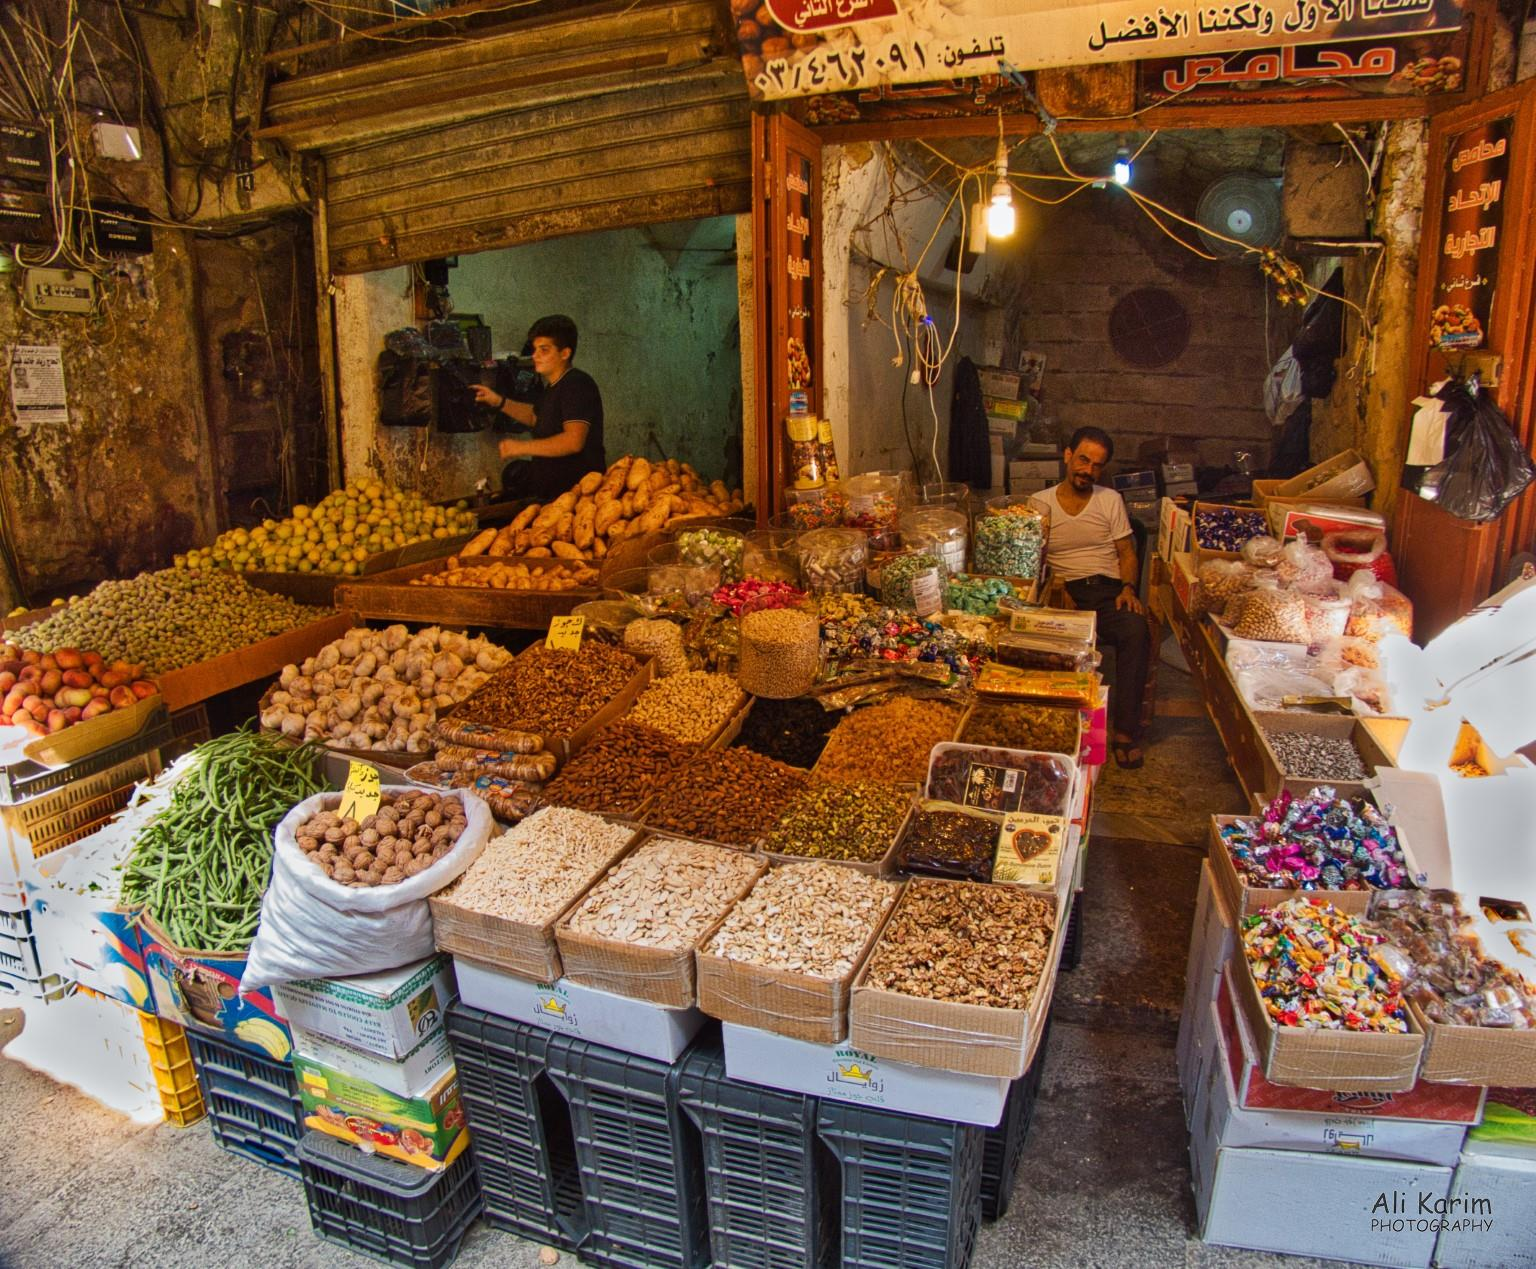 Tripoli Lebanon Nuts and dried fruits, and of course, vegetables